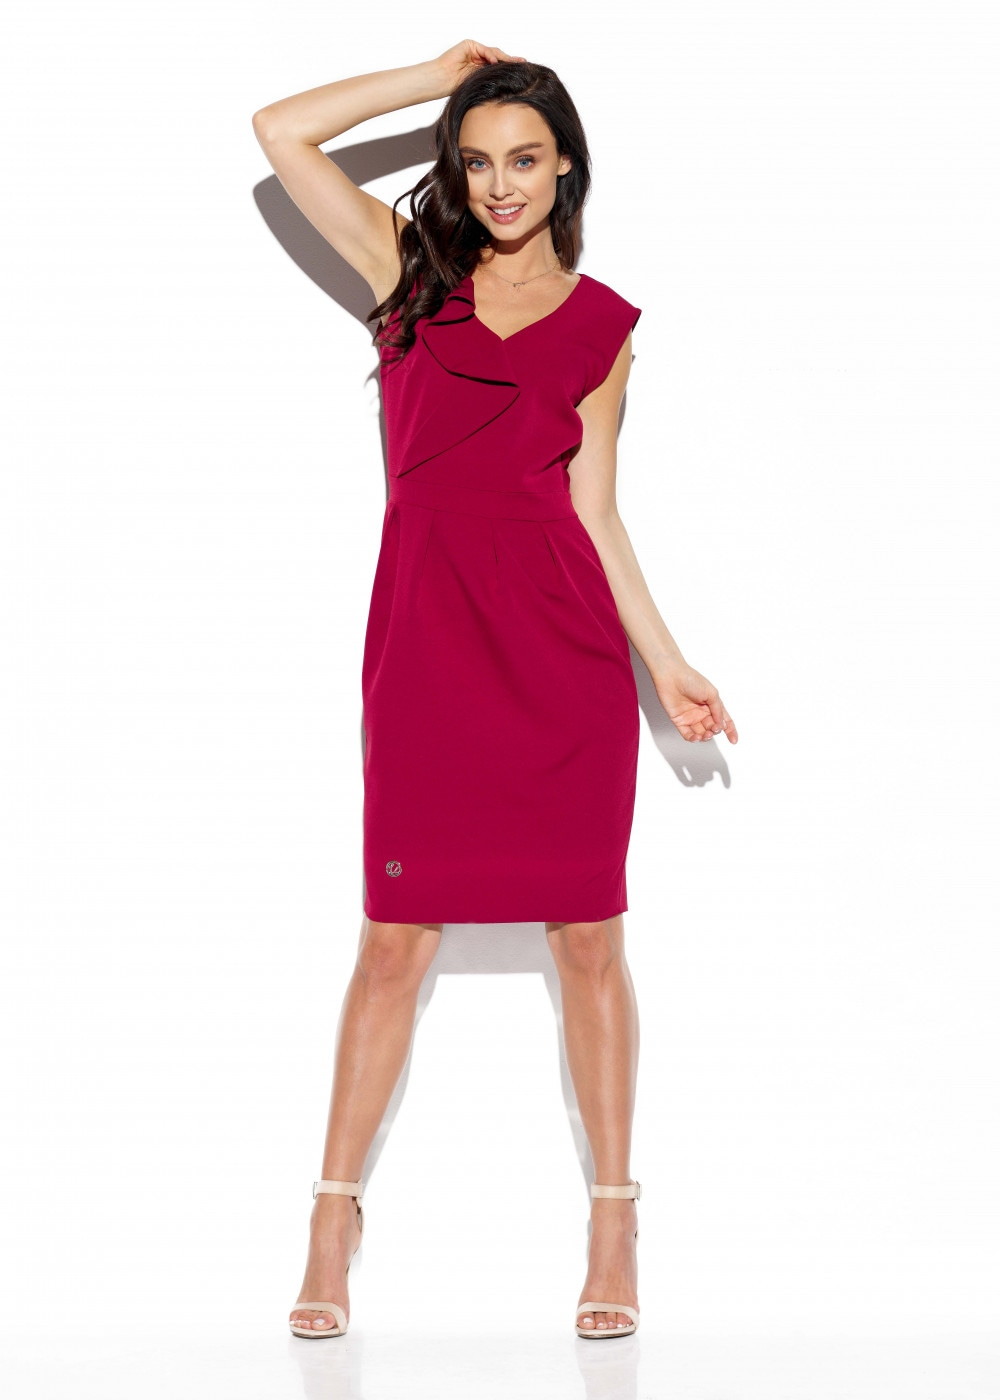 Lemoniade Woman's Dress L337 Crimson